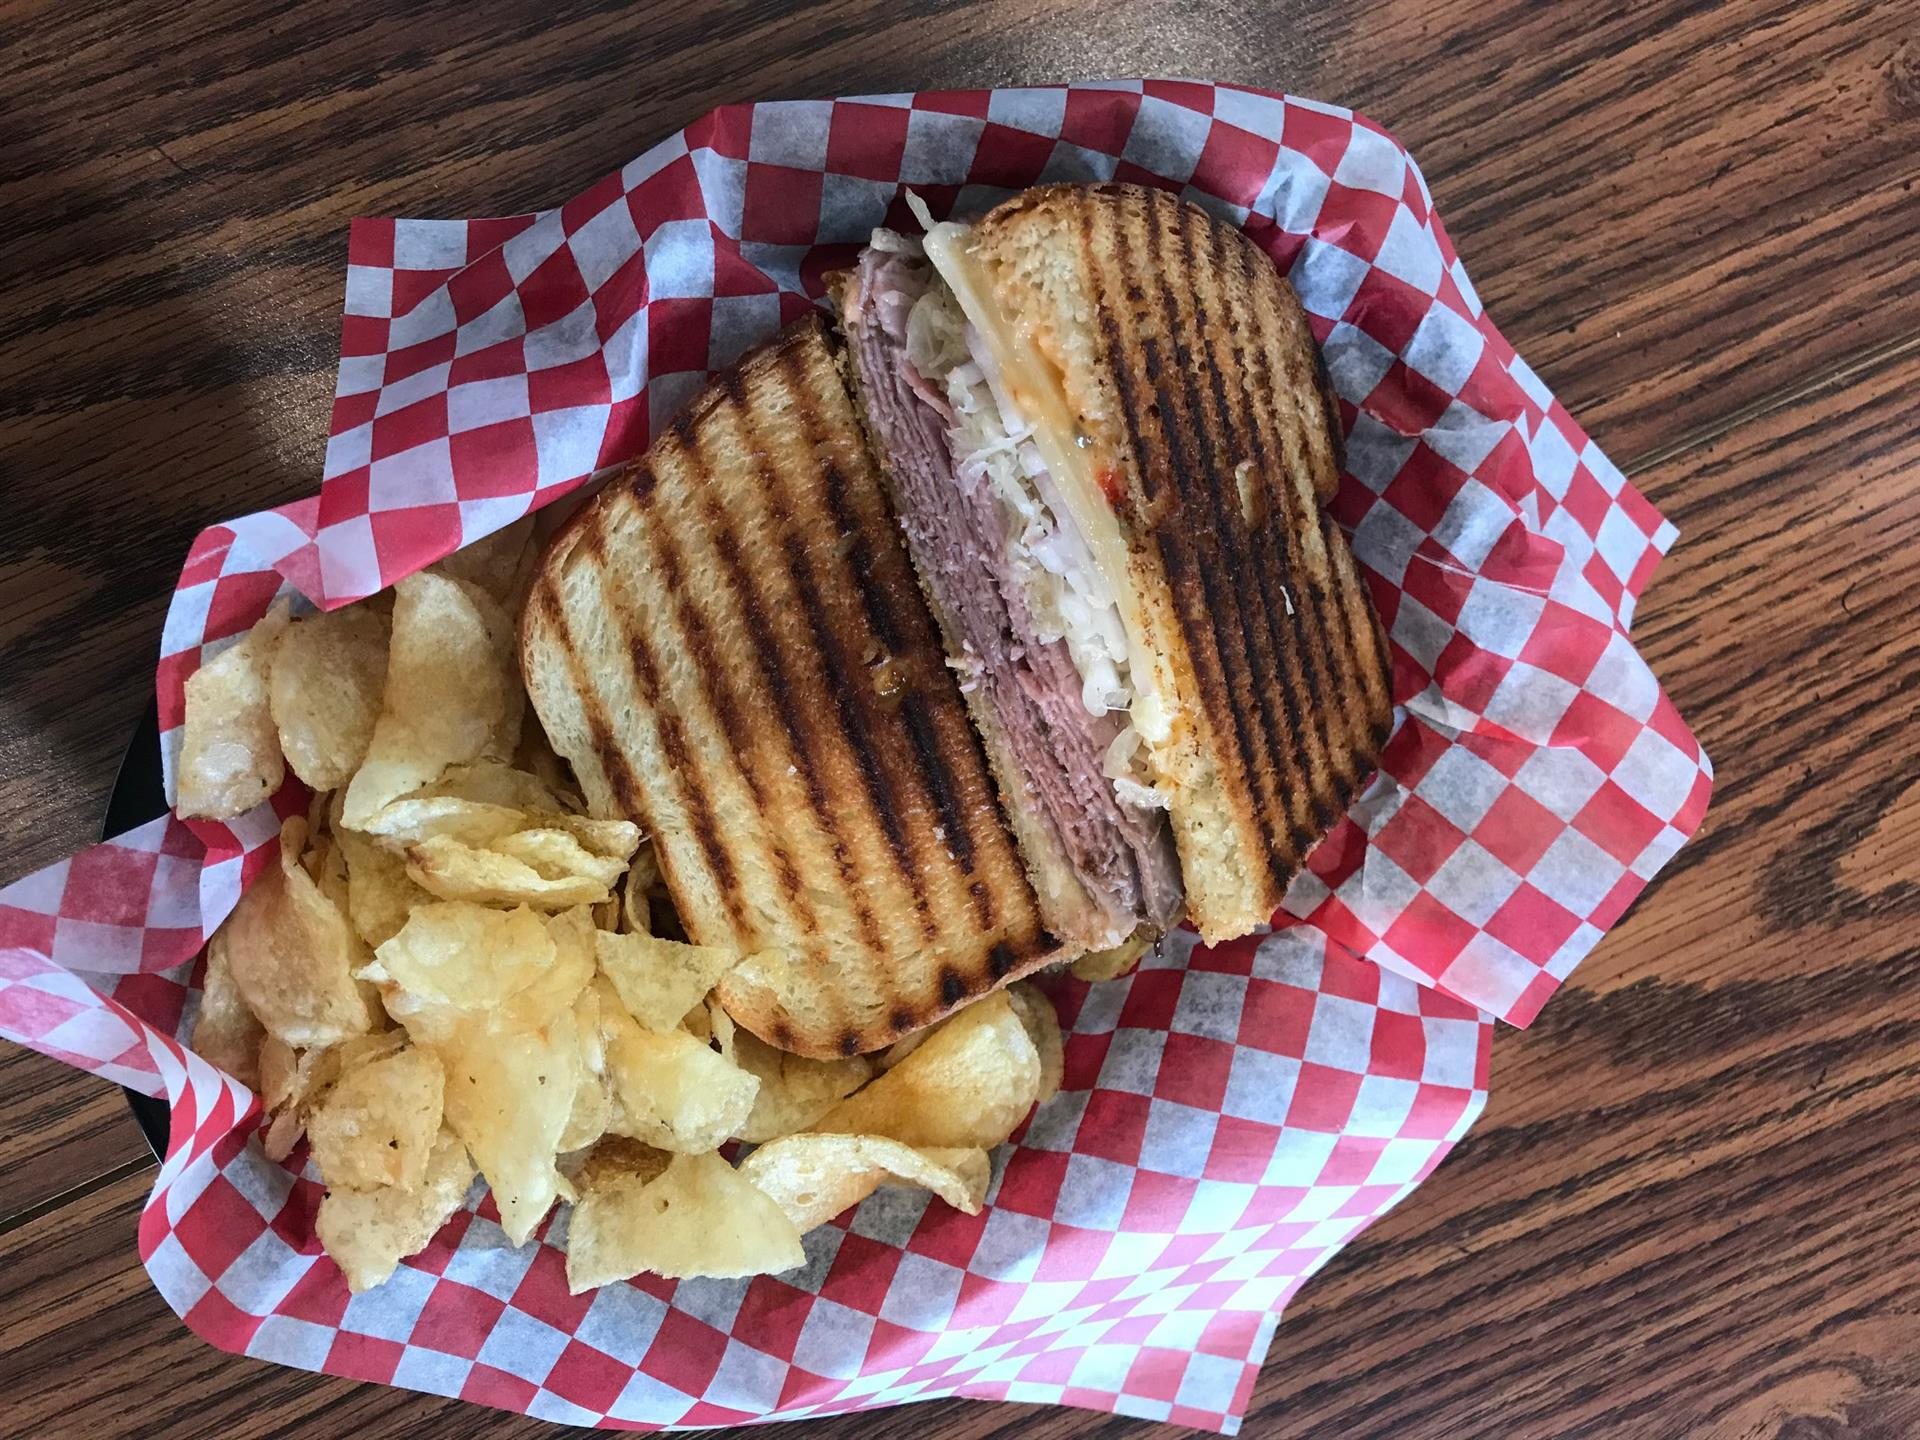 grilled cheese with ham, in a basket with potato chips